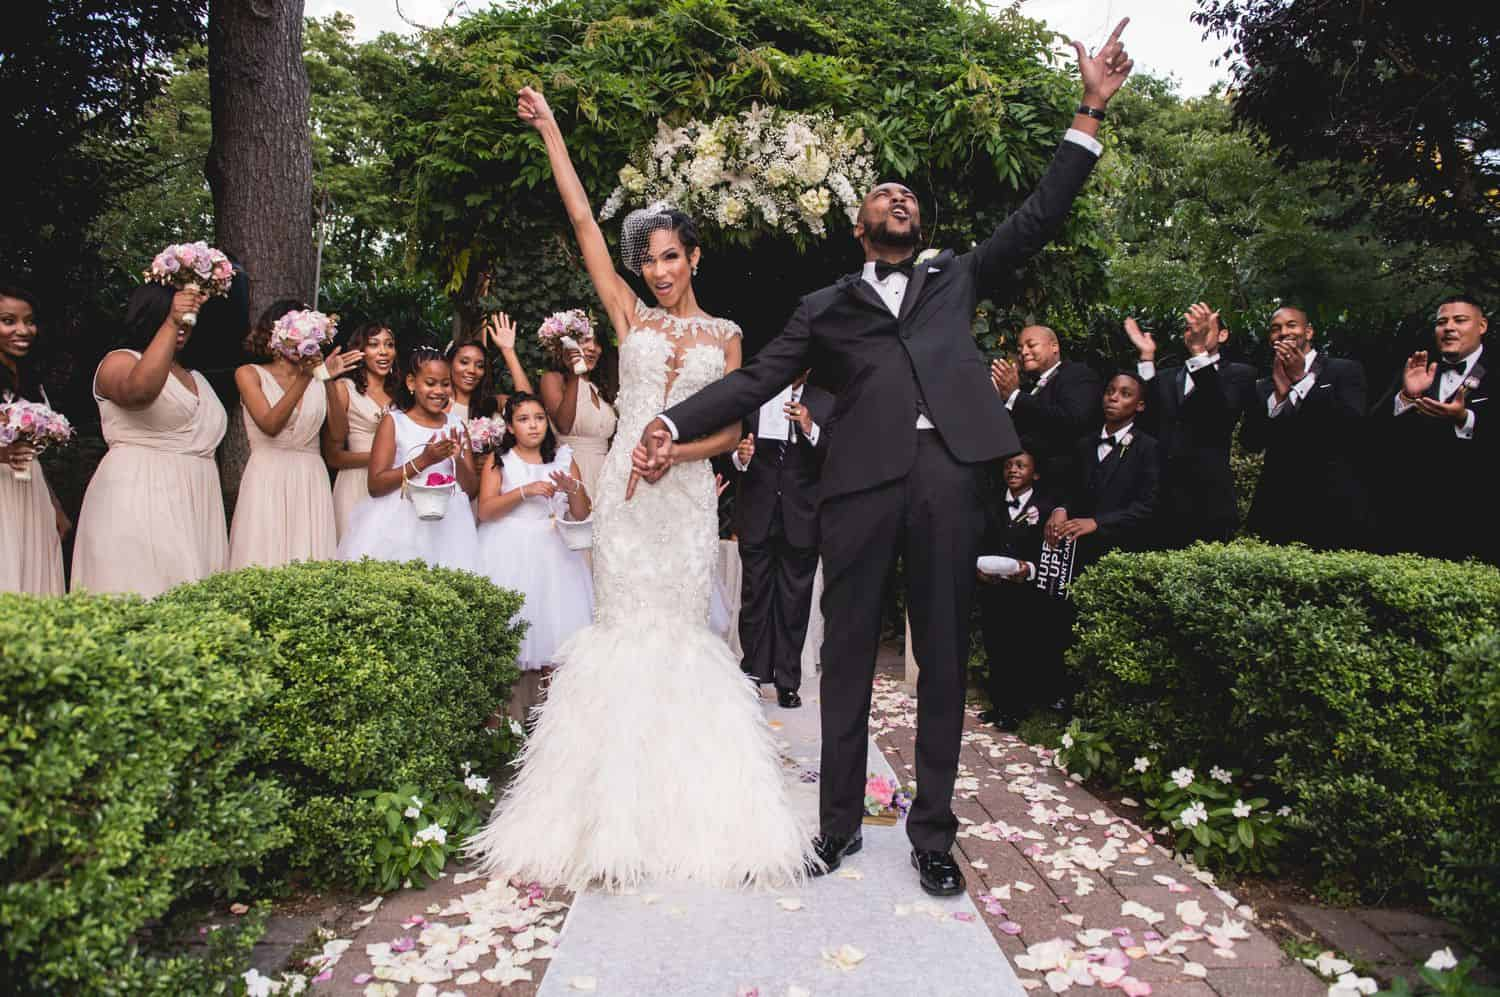 A newlywed couple cheering with their hands up as they walk down the aisle